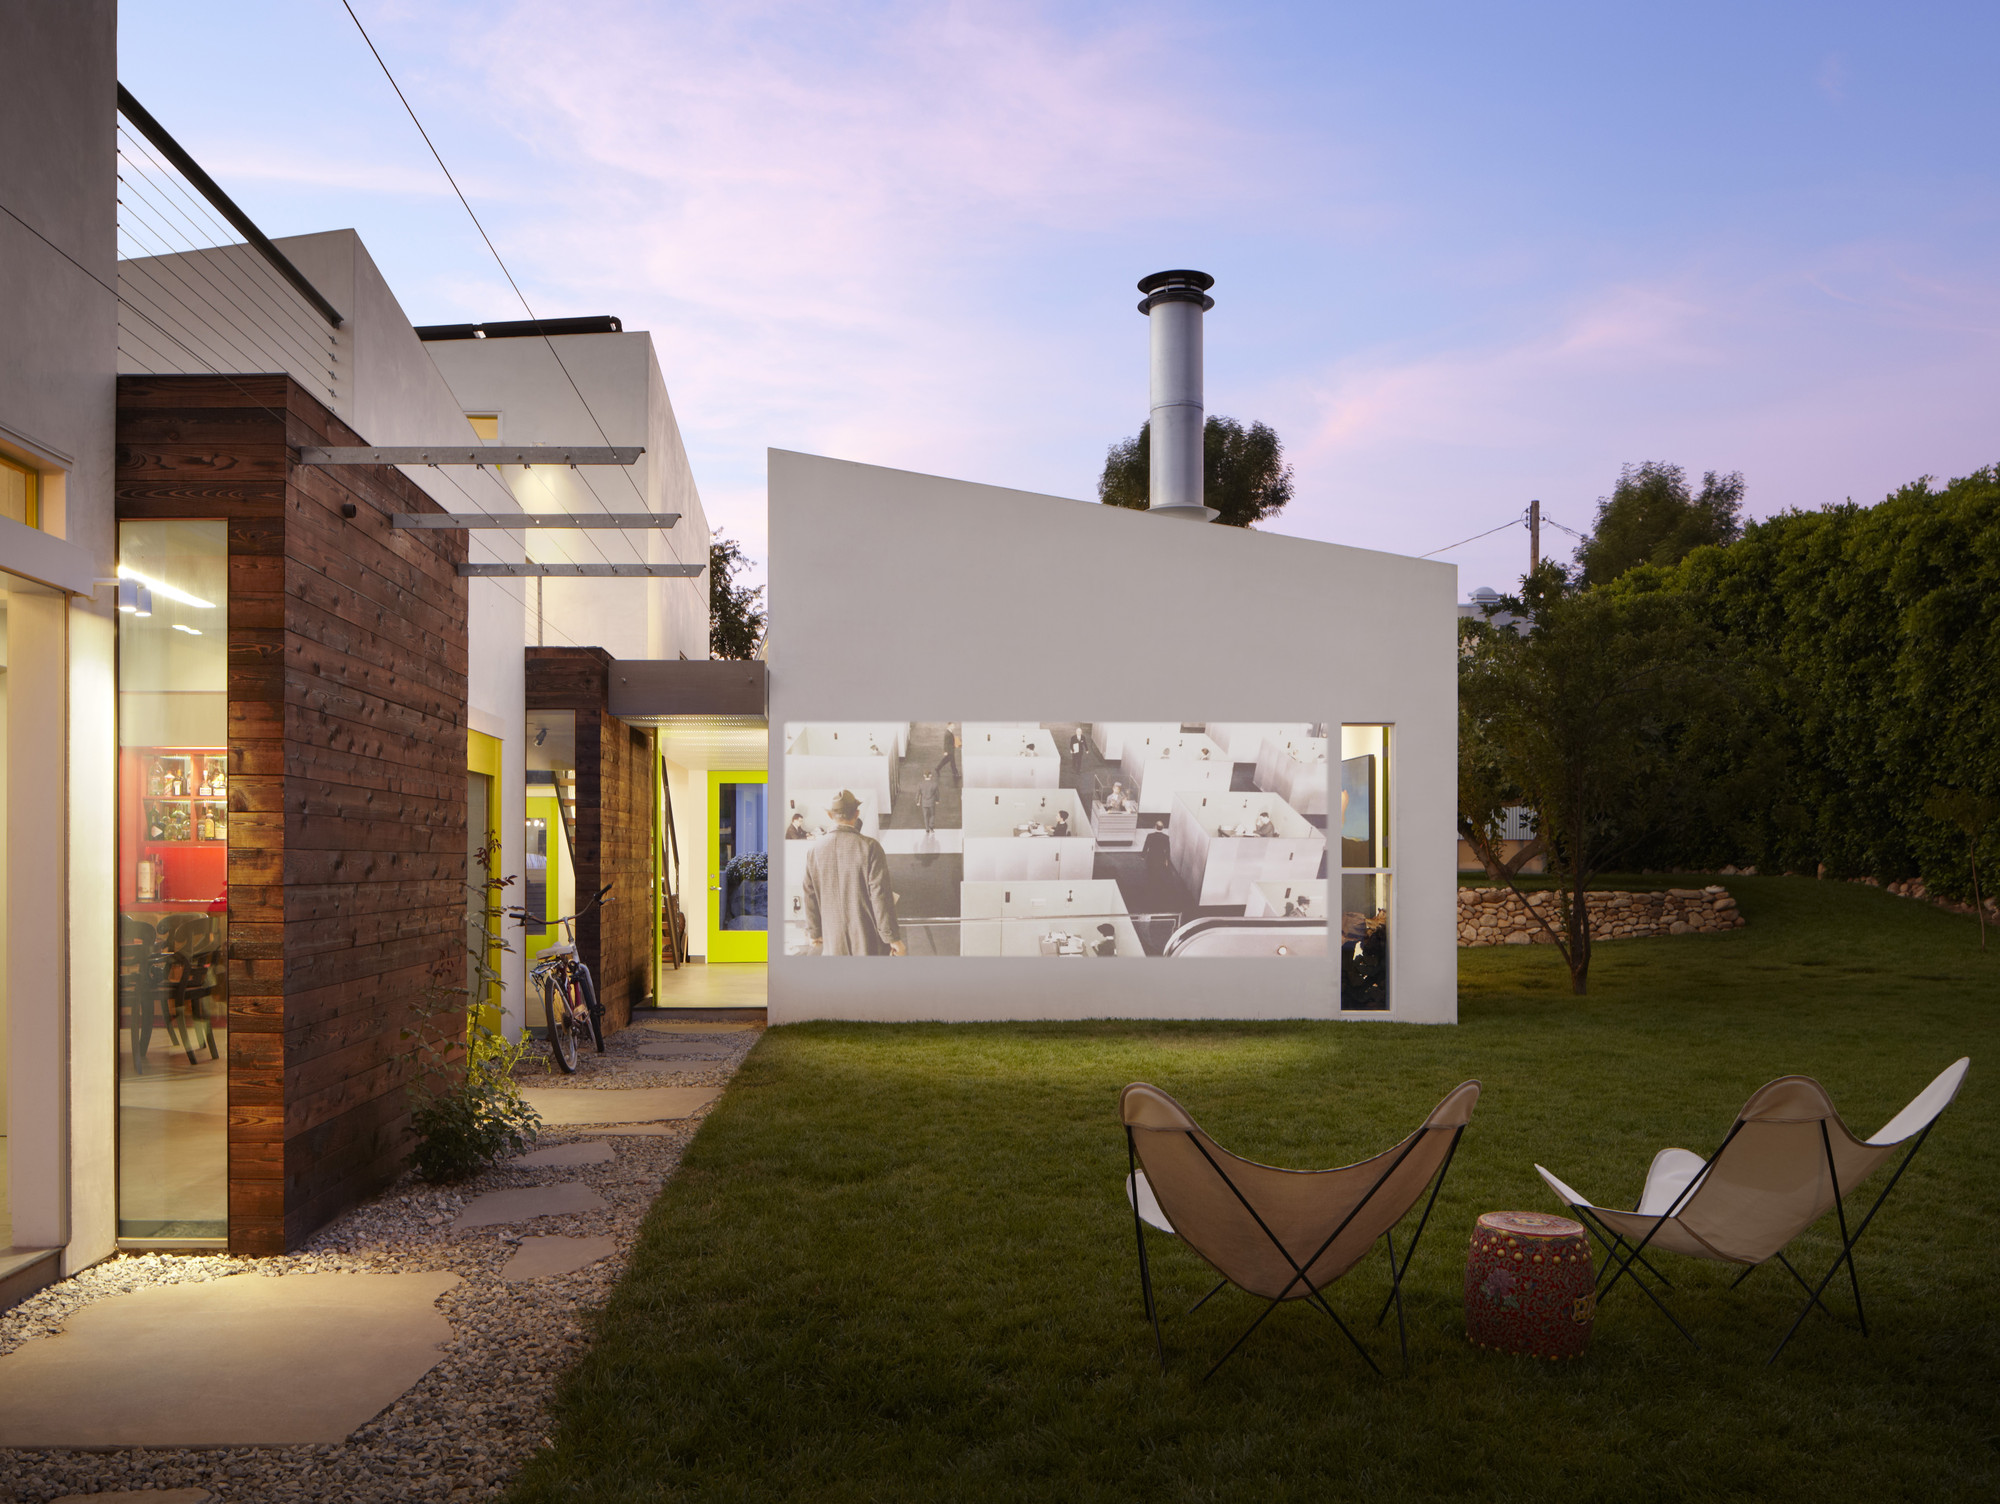 Informal House; South Pasadena, CA / Koning Eizenberg Architecture, Inc.